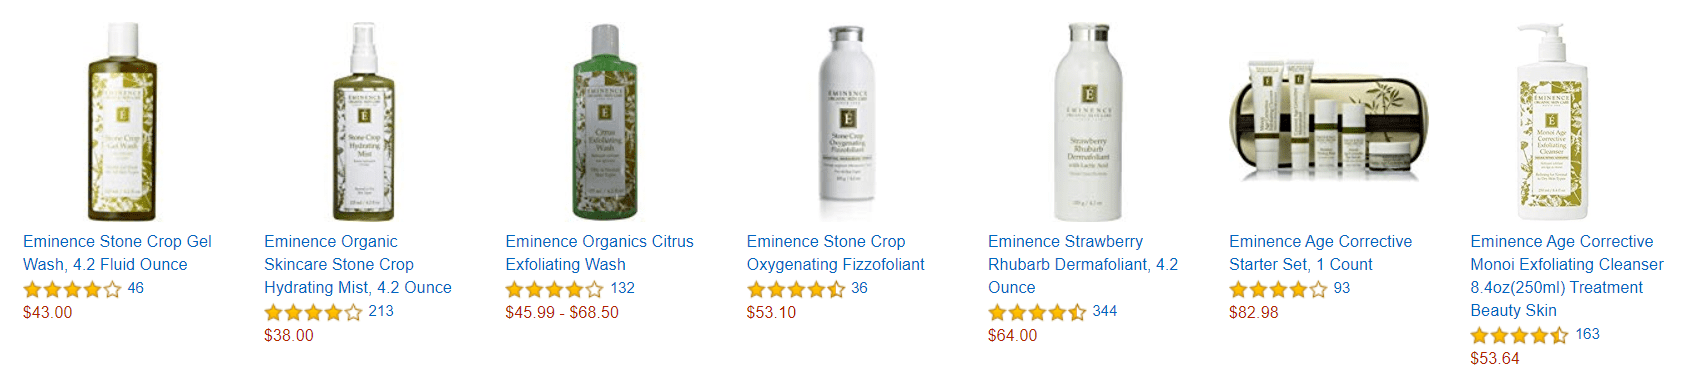 Eminence Skin Care Reviews Products on Amazon-min